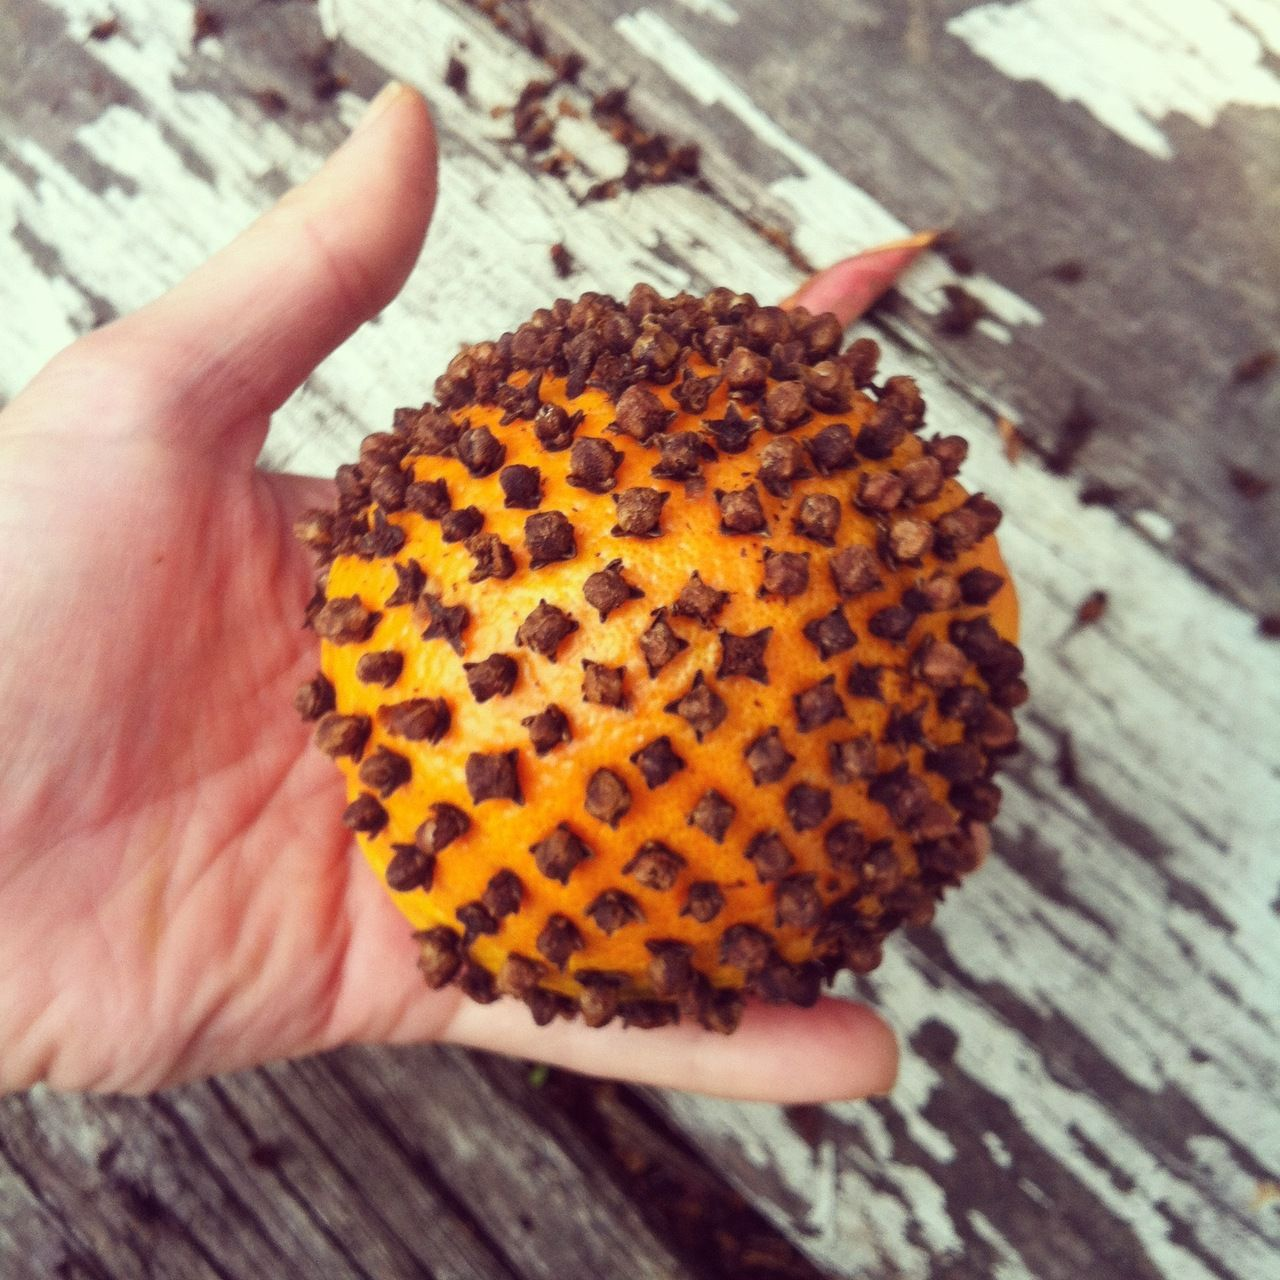 casapepe:  Make your house smell amazing for the holidays with Clove-Studded Oranges!  This project will take a little bit of hard work and patience but the aroma of orange and cloves wafting through your home this holiday season will ultimately make it well worth the effort.